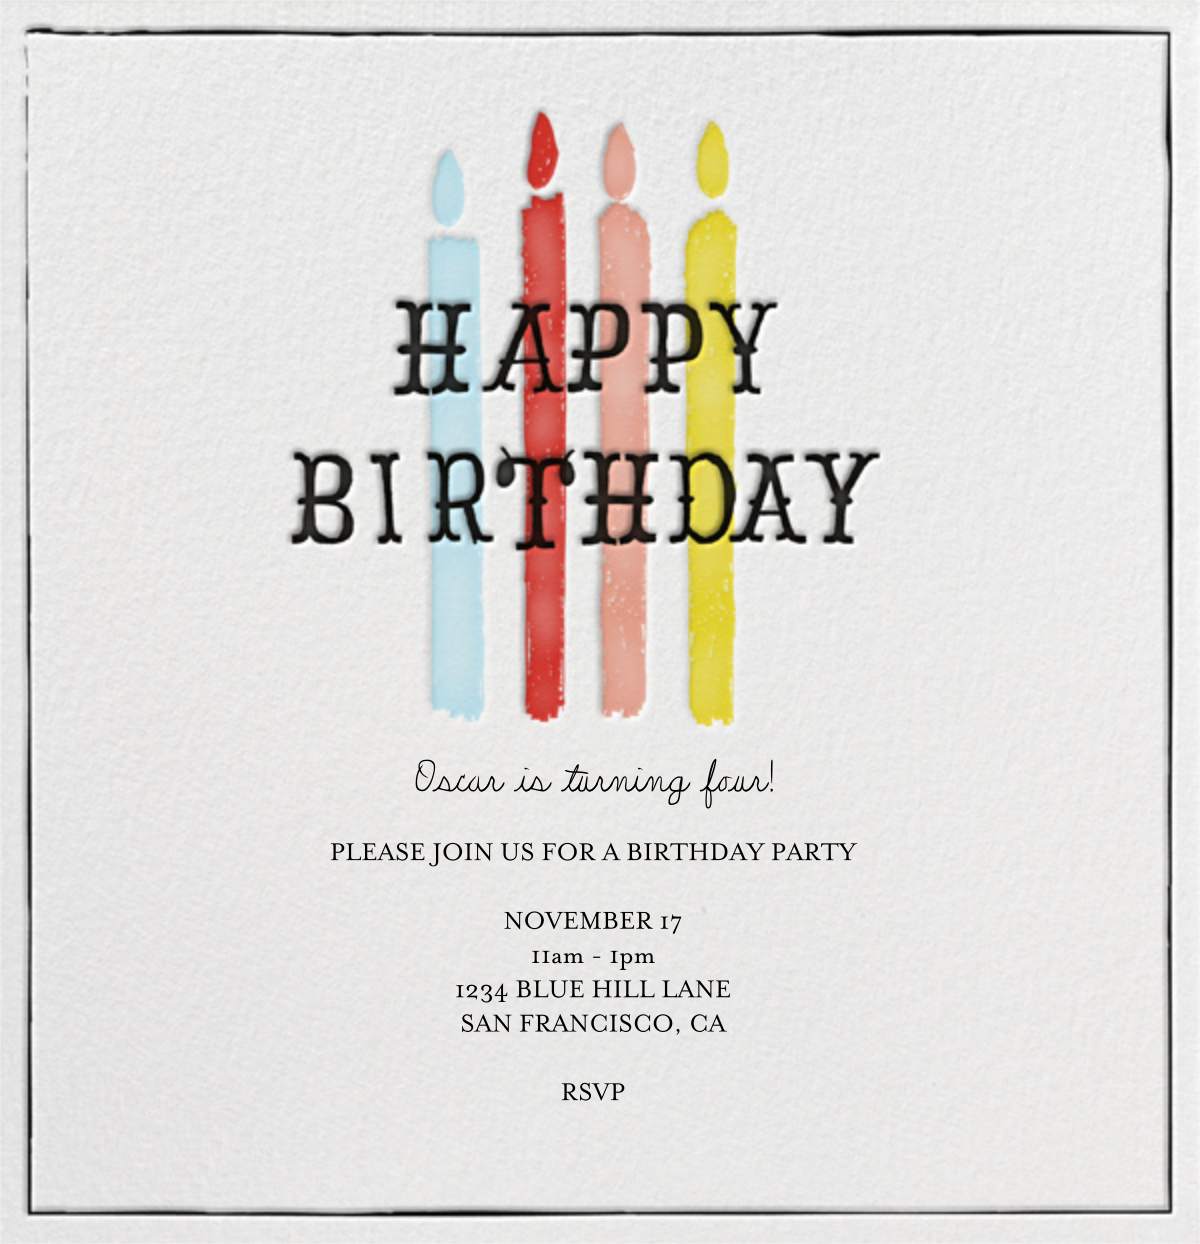 Blow Out the Candles - Four - Mr. Boddington's Studio - Adult birthday